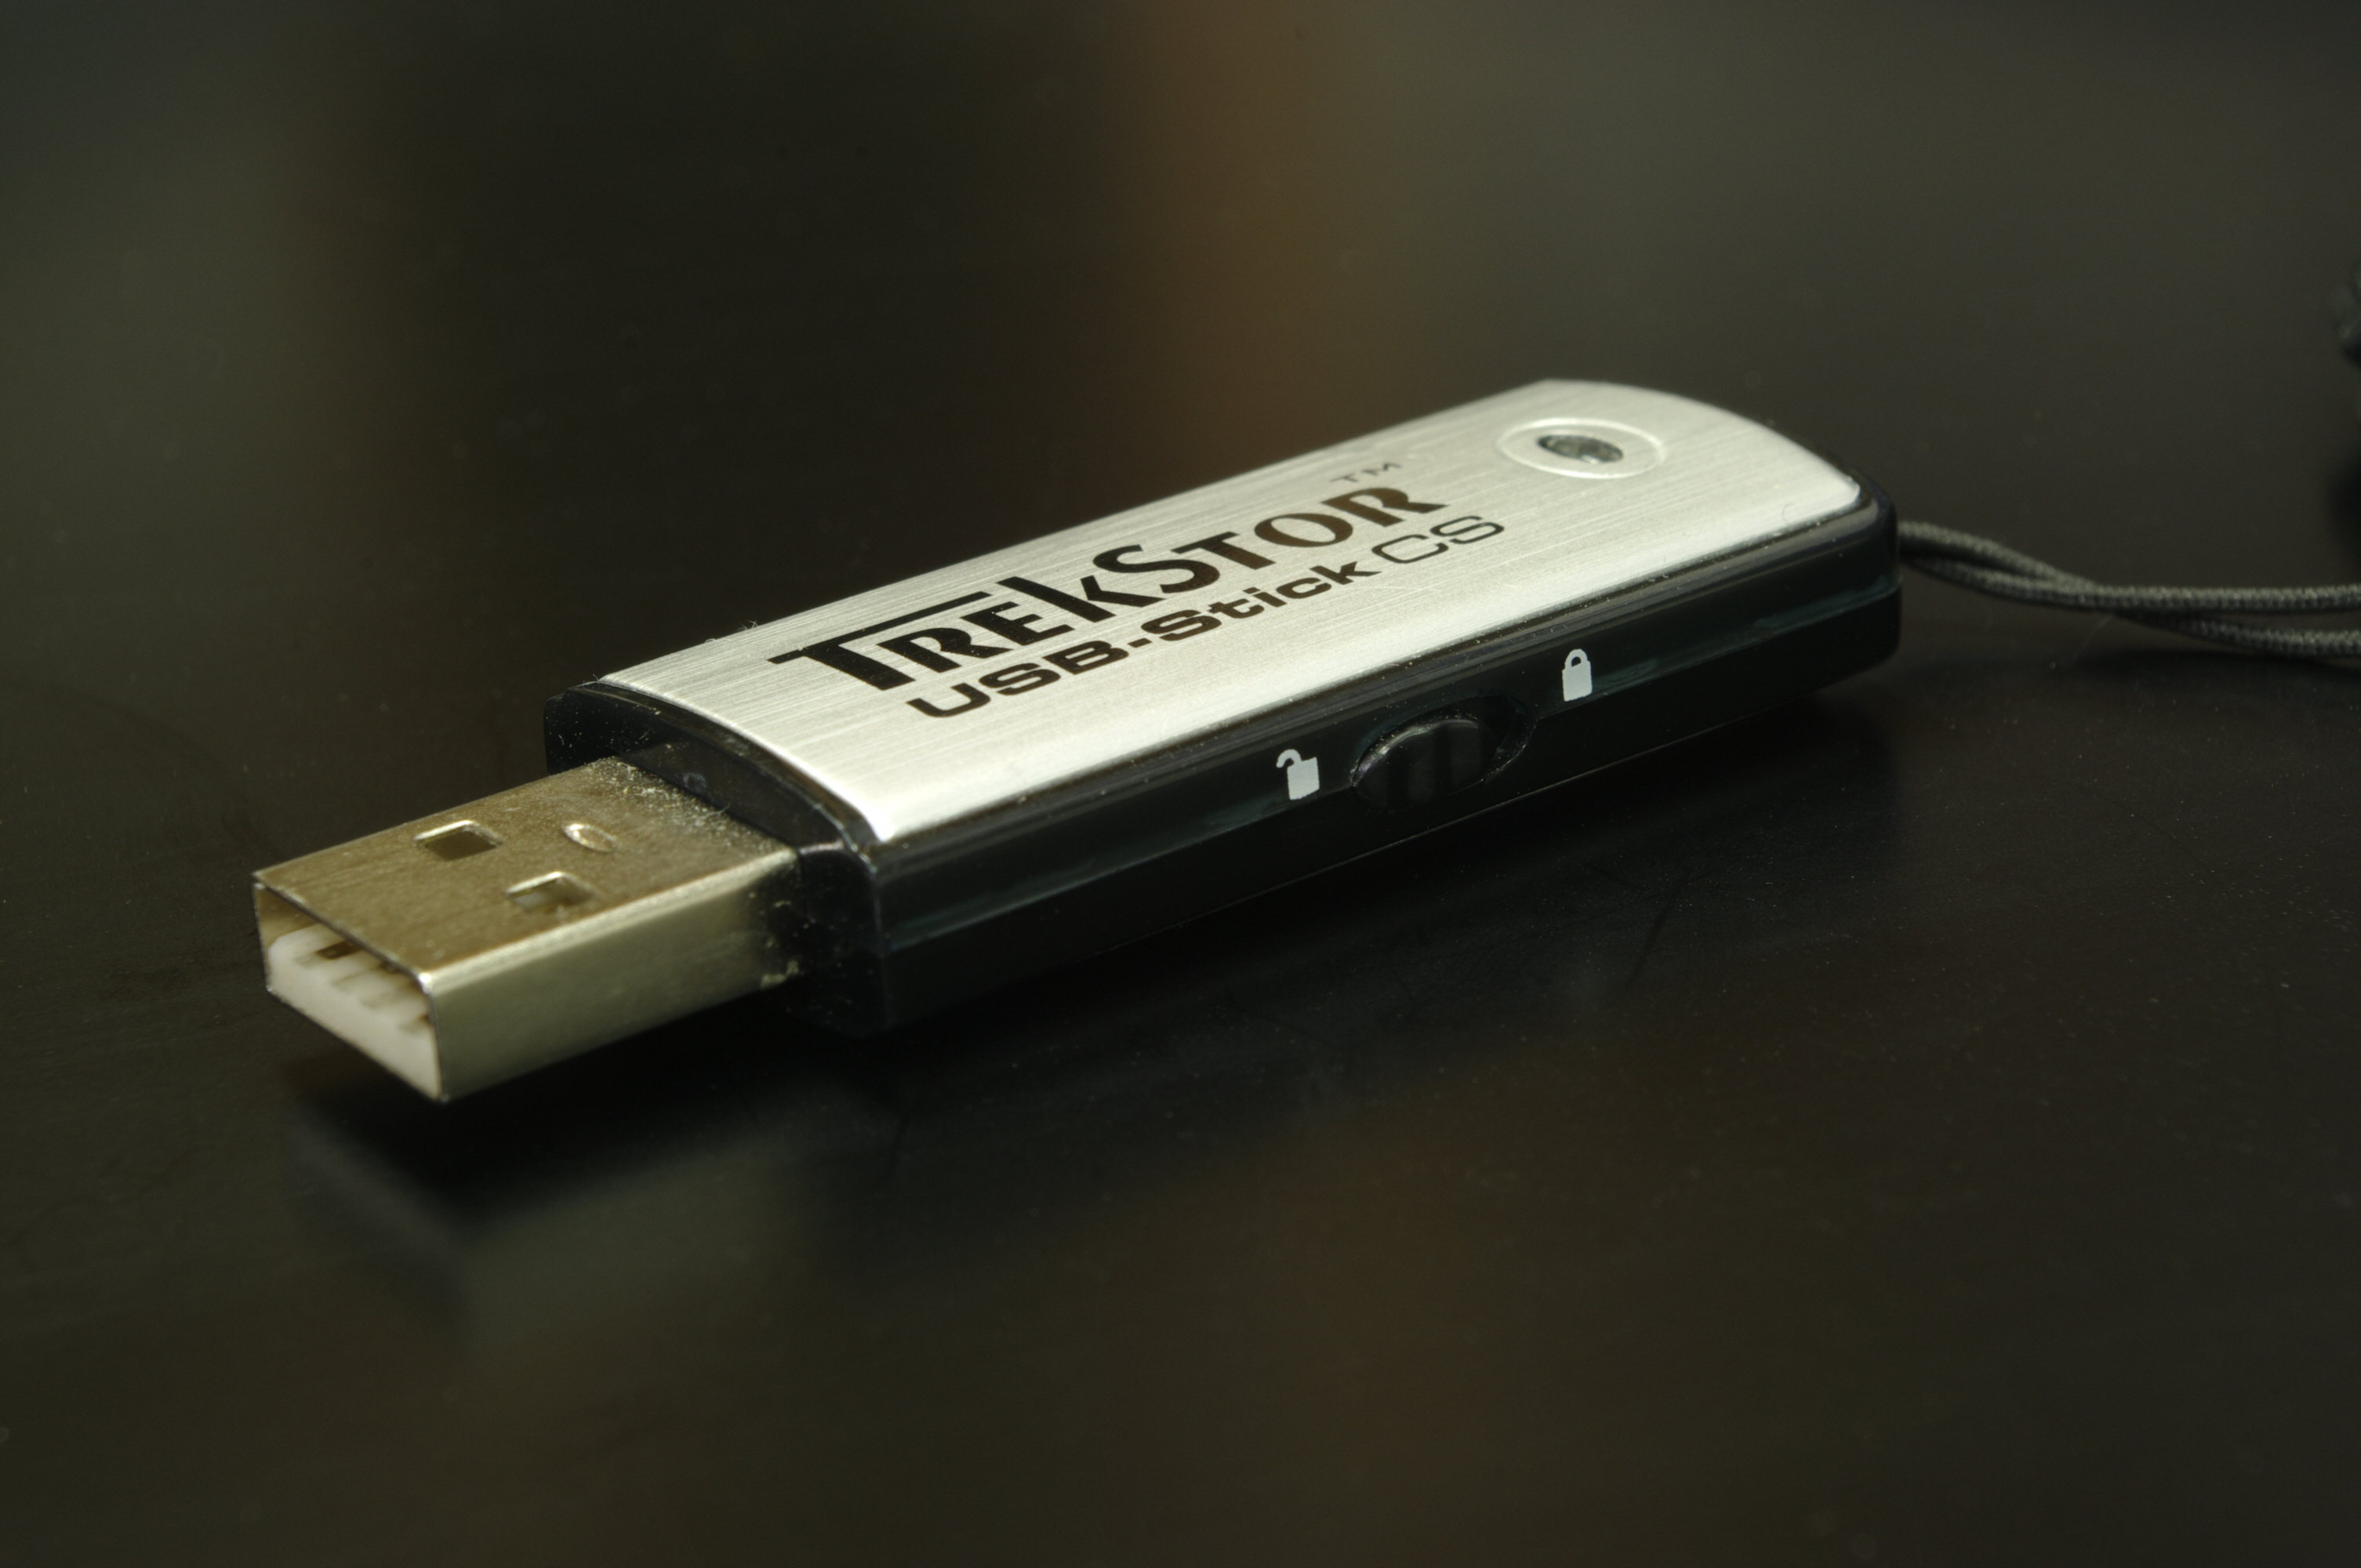 How to protect a USB flash drive